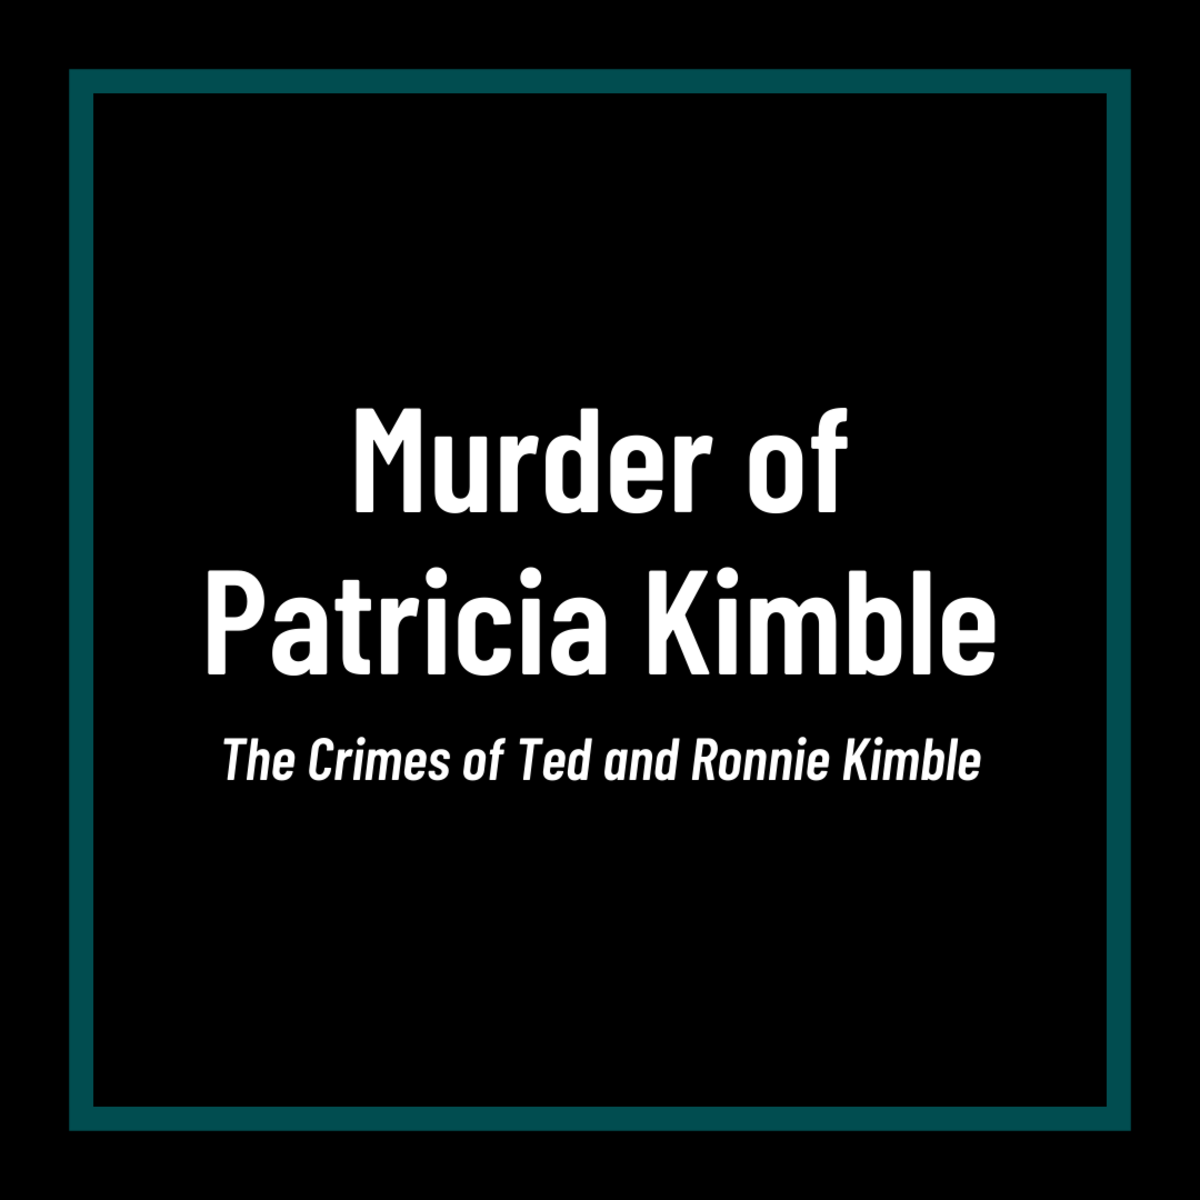 Discover the true-crime story of Patricia Kimble's murder.